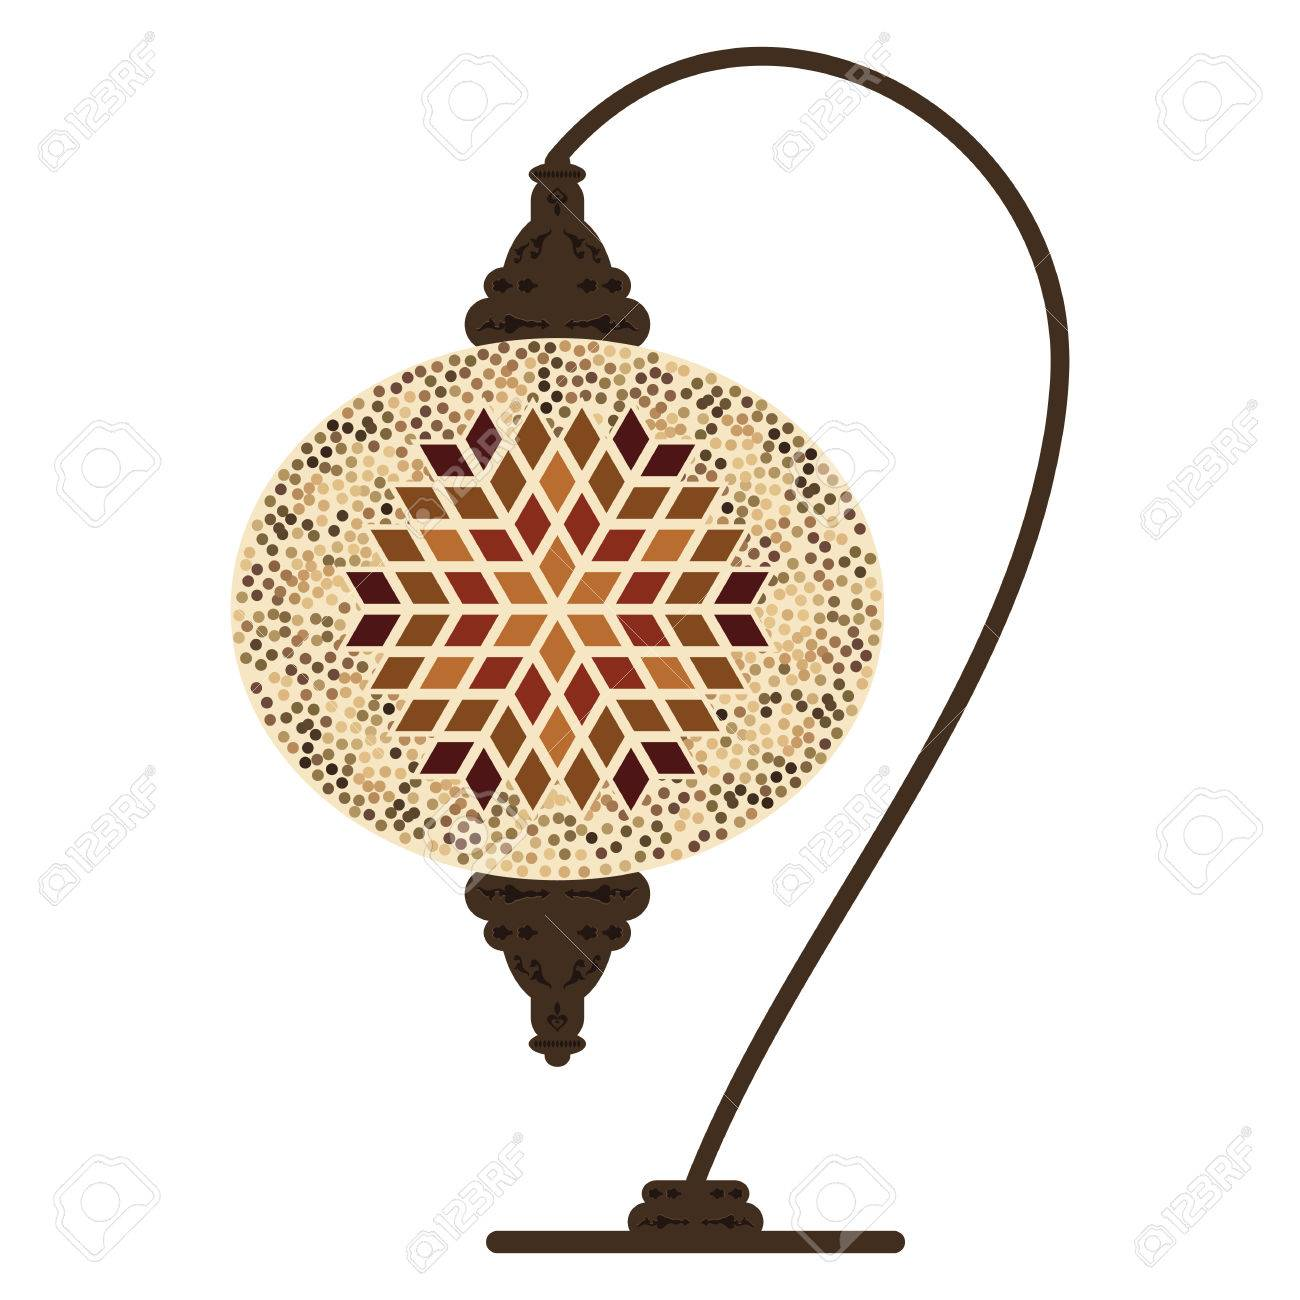 Vector illustration of traditional turkish table lamp with beige vector illustration of traditional turkish table lamp with beige ornamental design 60720359 mozeypictures Image collections